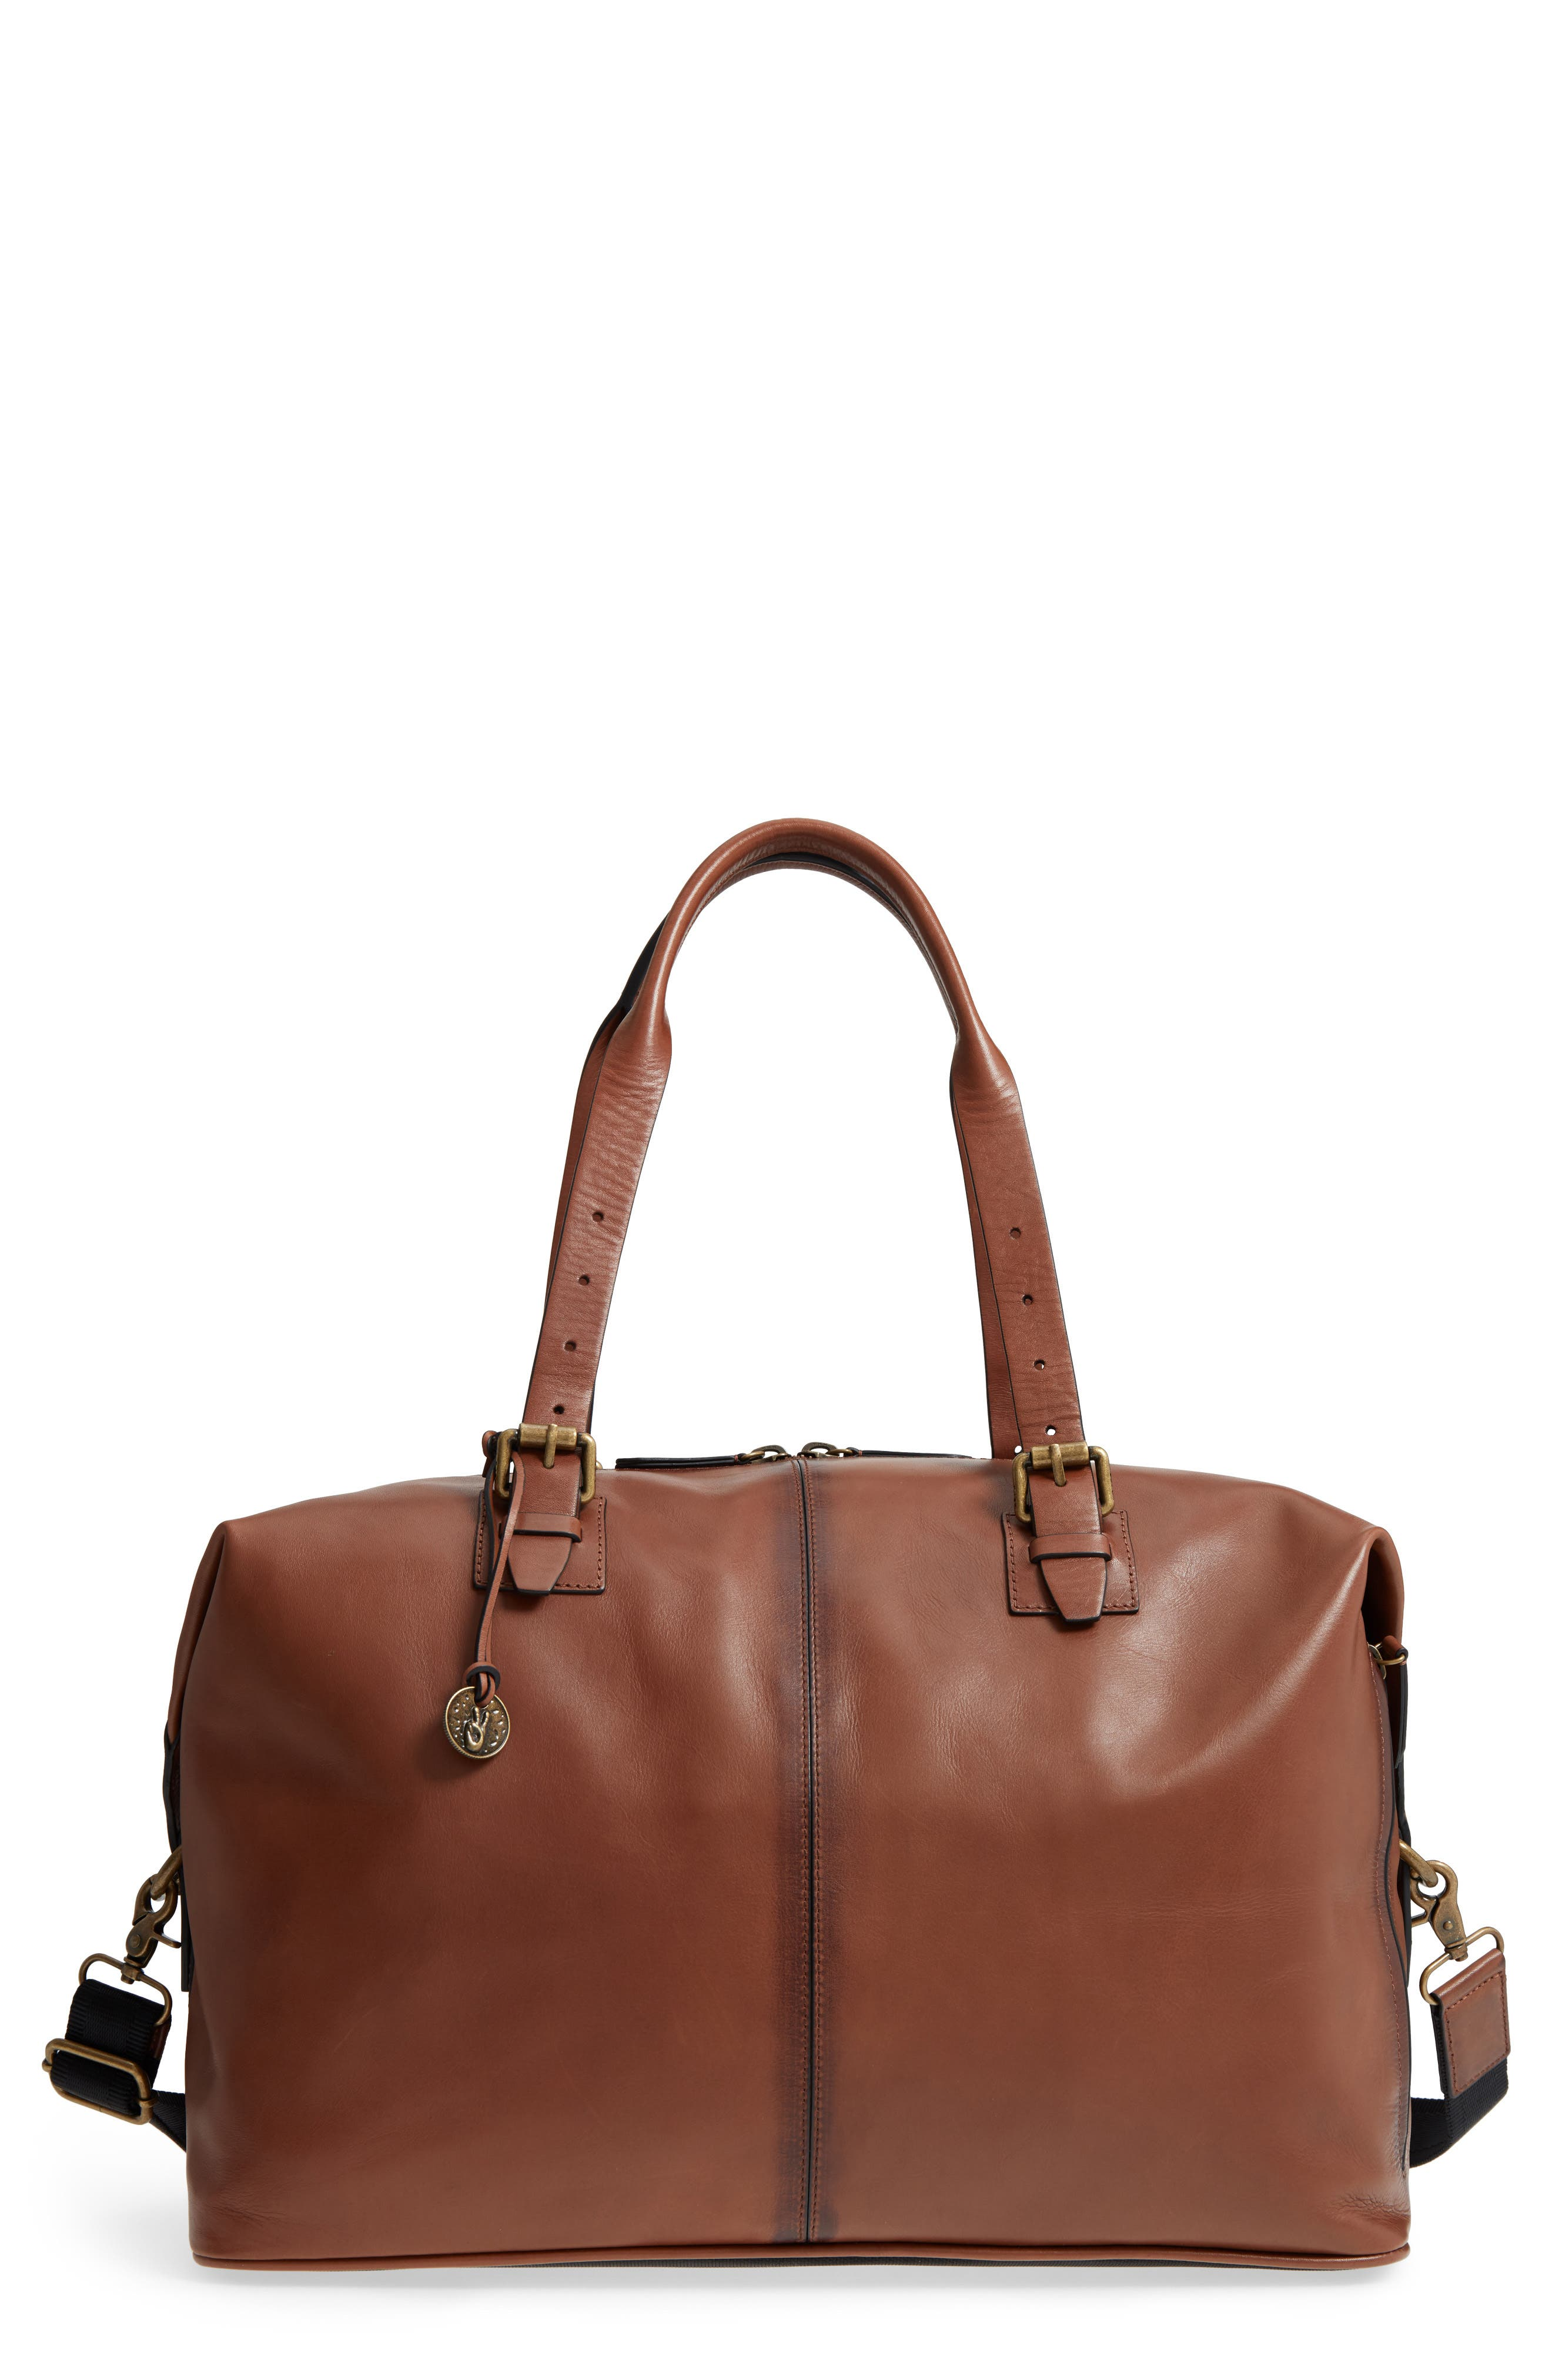 Heritage Leather Duffel Bag,                         Main,                         color, Brownstone